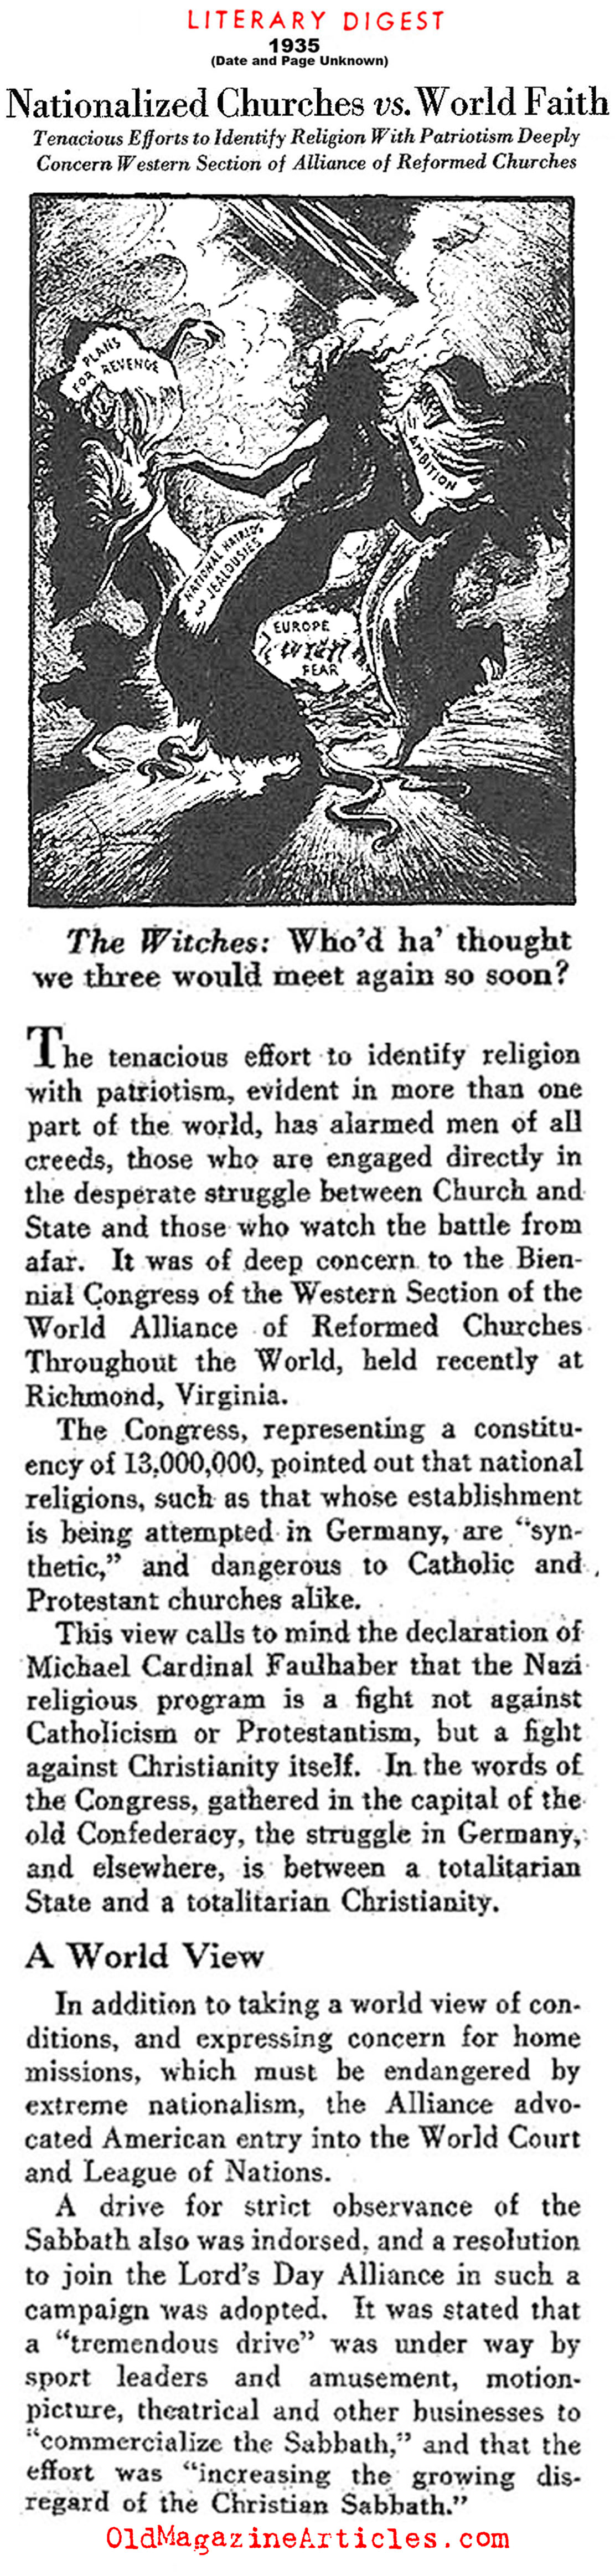 The Era of Nationalized Religions (The Literary Digest, 1935)